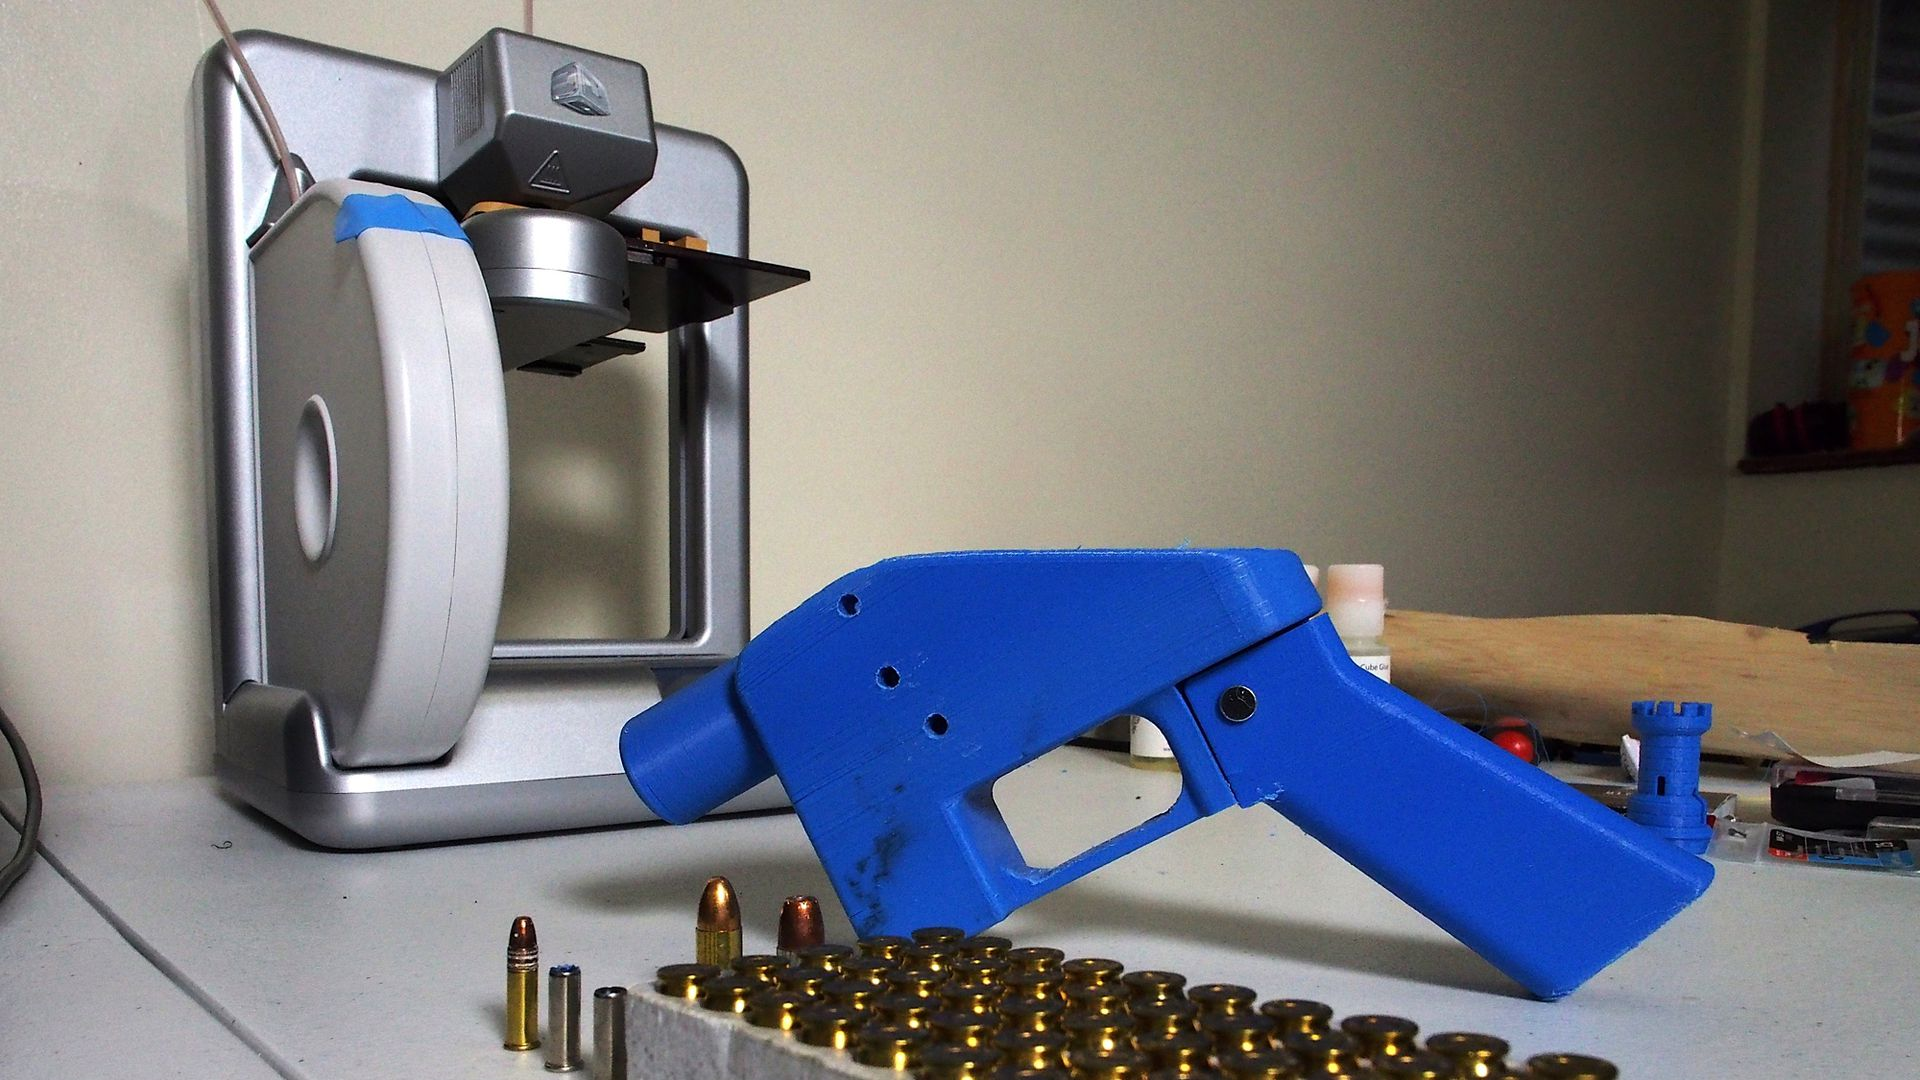 Release of blueprints for 3D-printed guns halted by federal judge